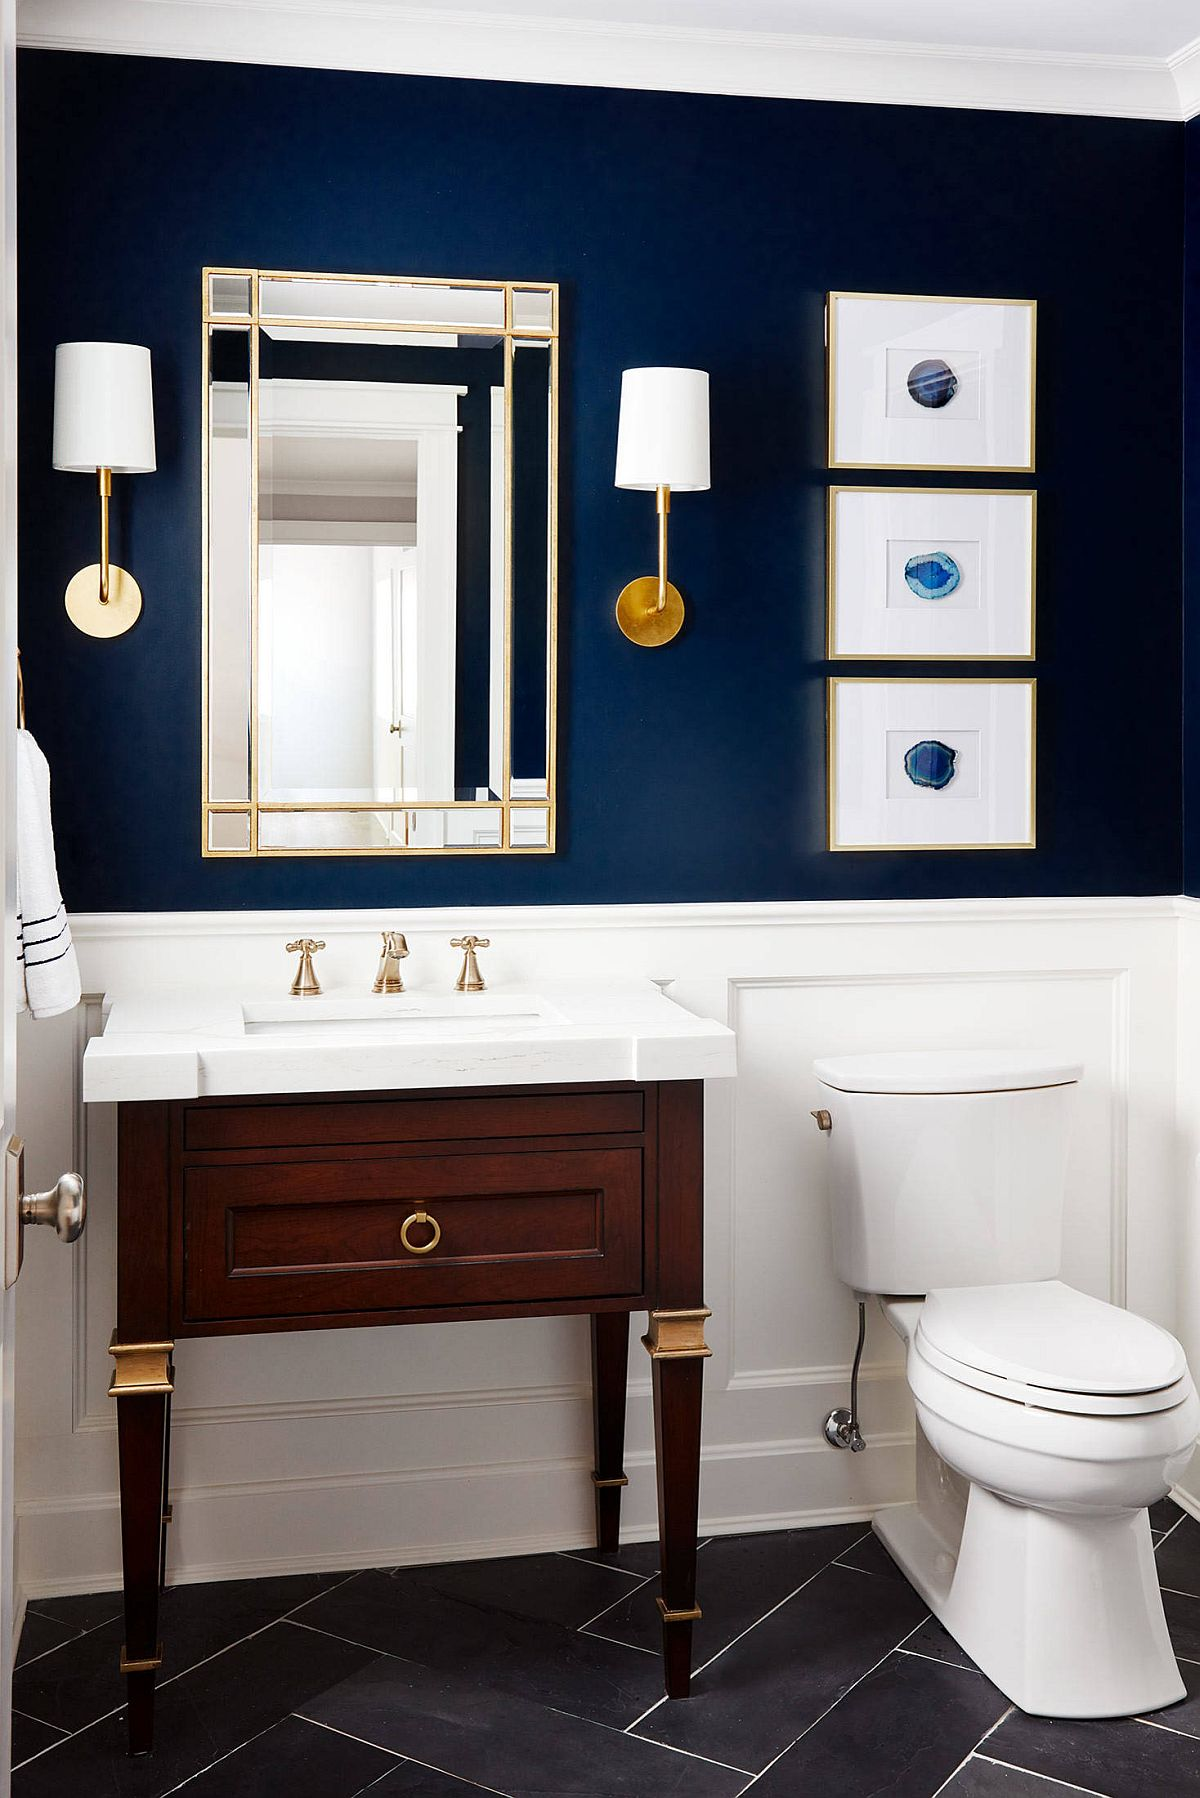 Sophisticated bathroom in dark blue and white with smart art pieces that reflect its style